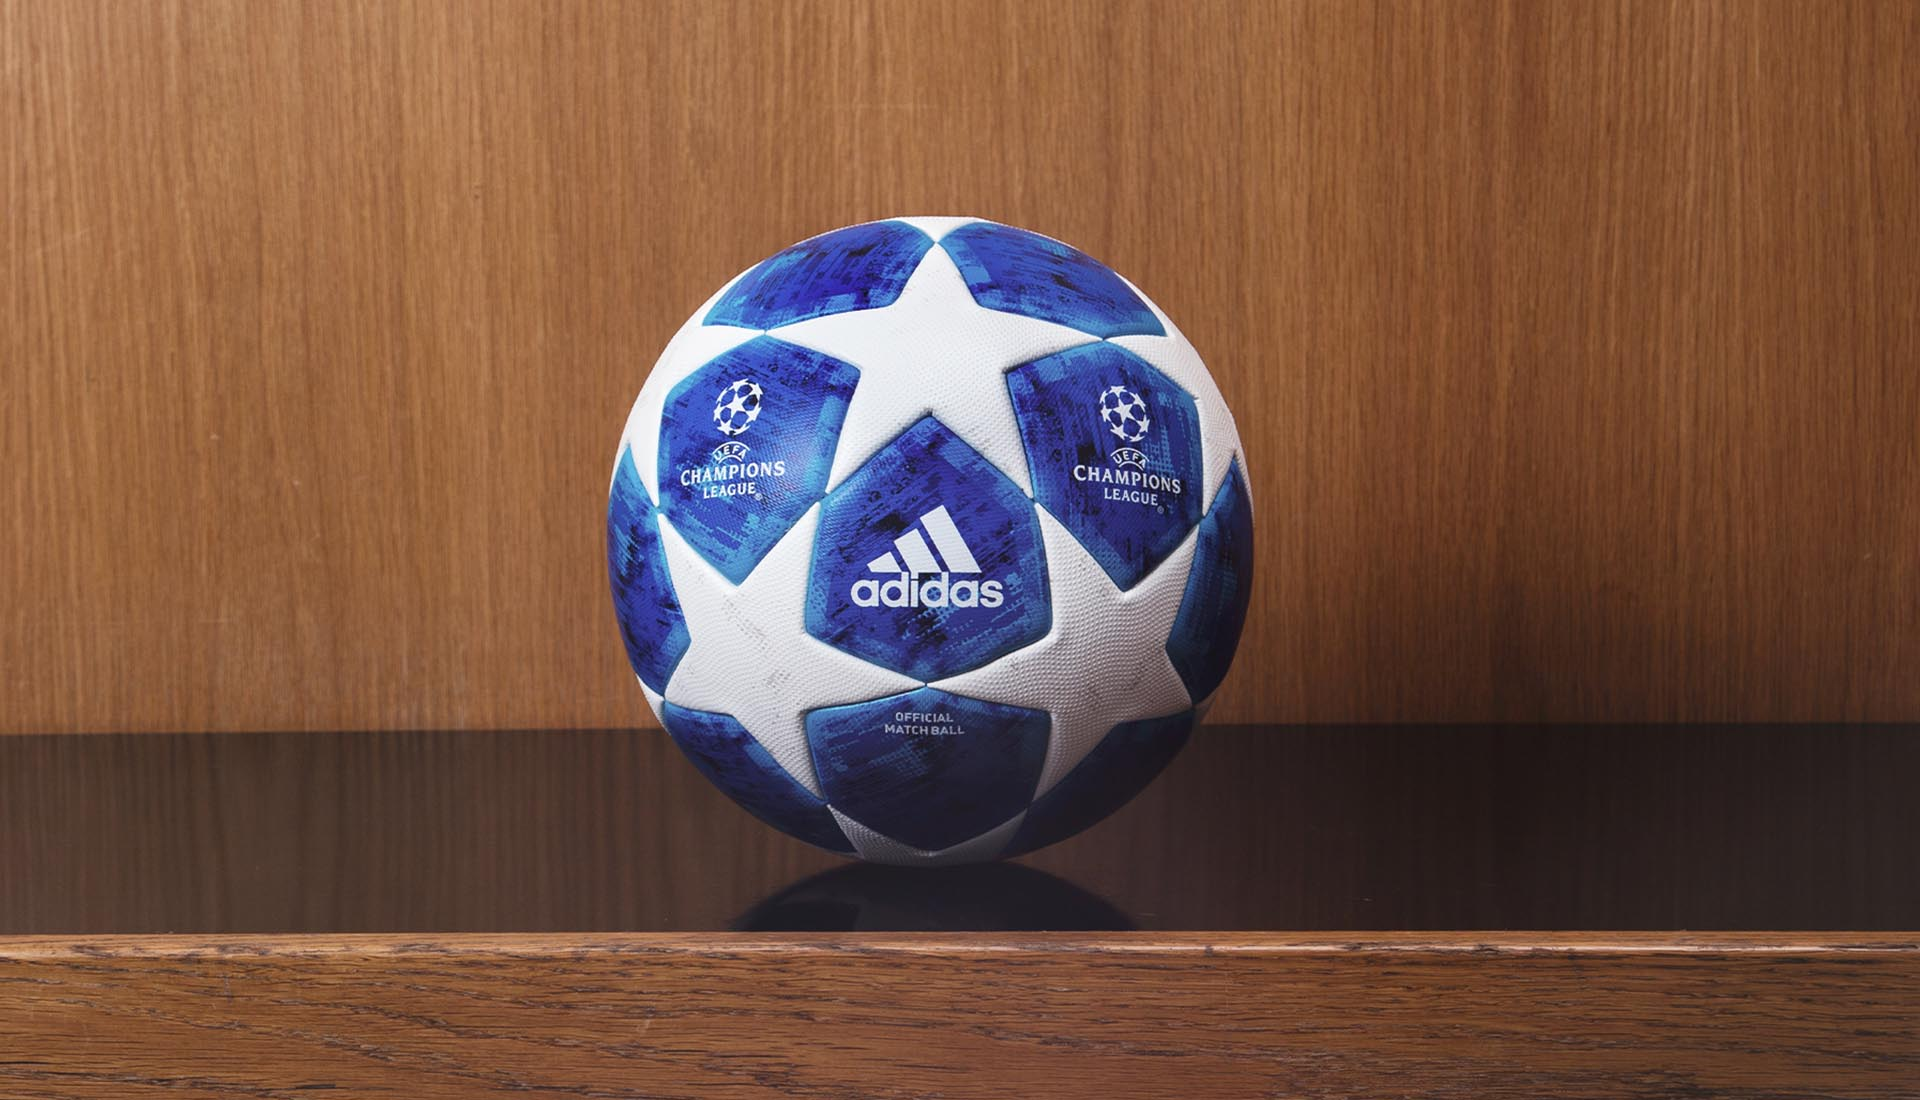 18 19 Champs League Ball Adidas_0007_UCL_OMB_16x9_01.jpg